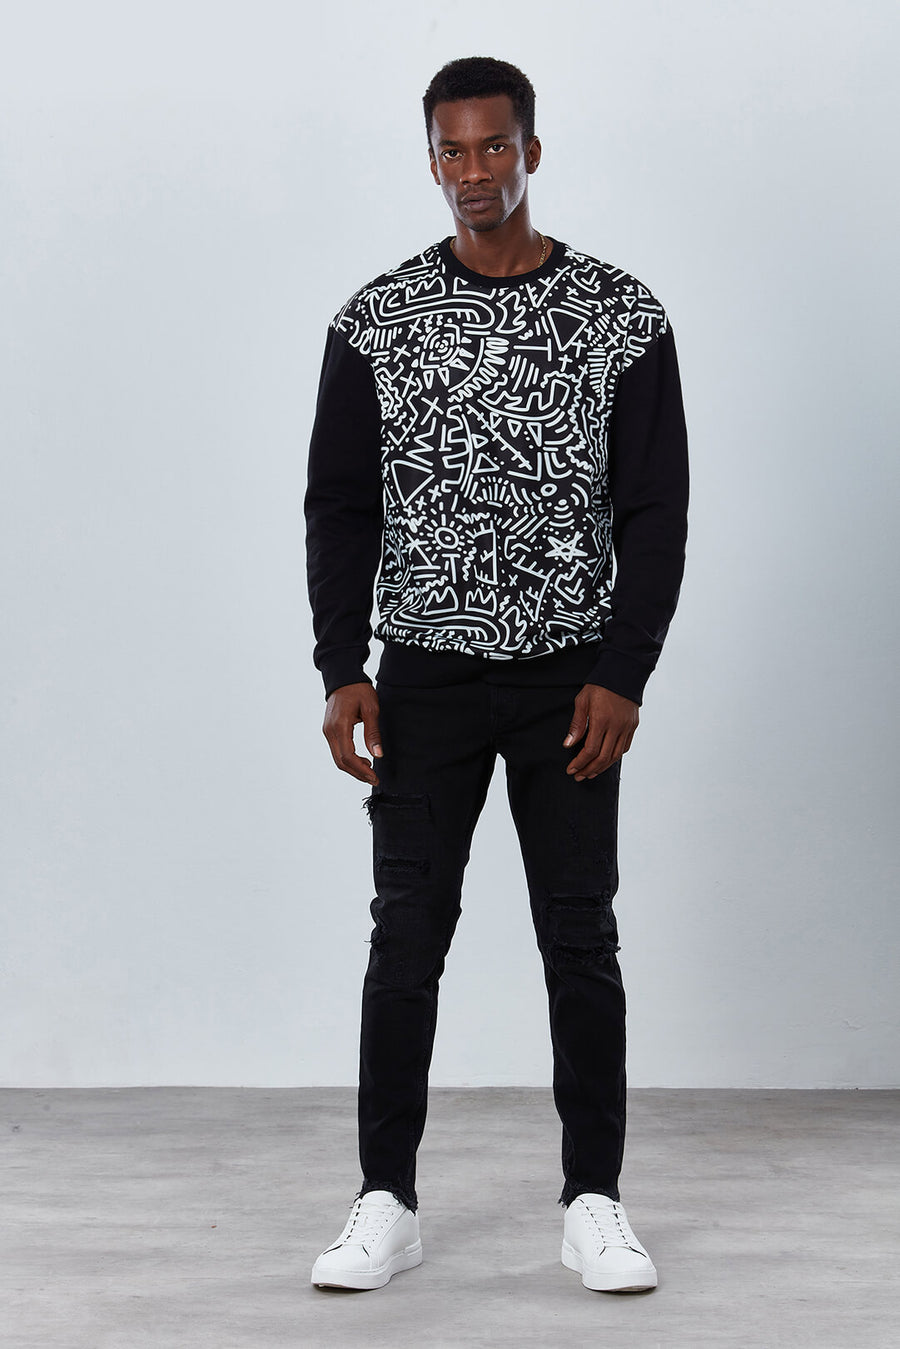 DDG3045 Hypnotic Graphic Print Sweatshirt with Black Sleeves Dear Deer Front close up